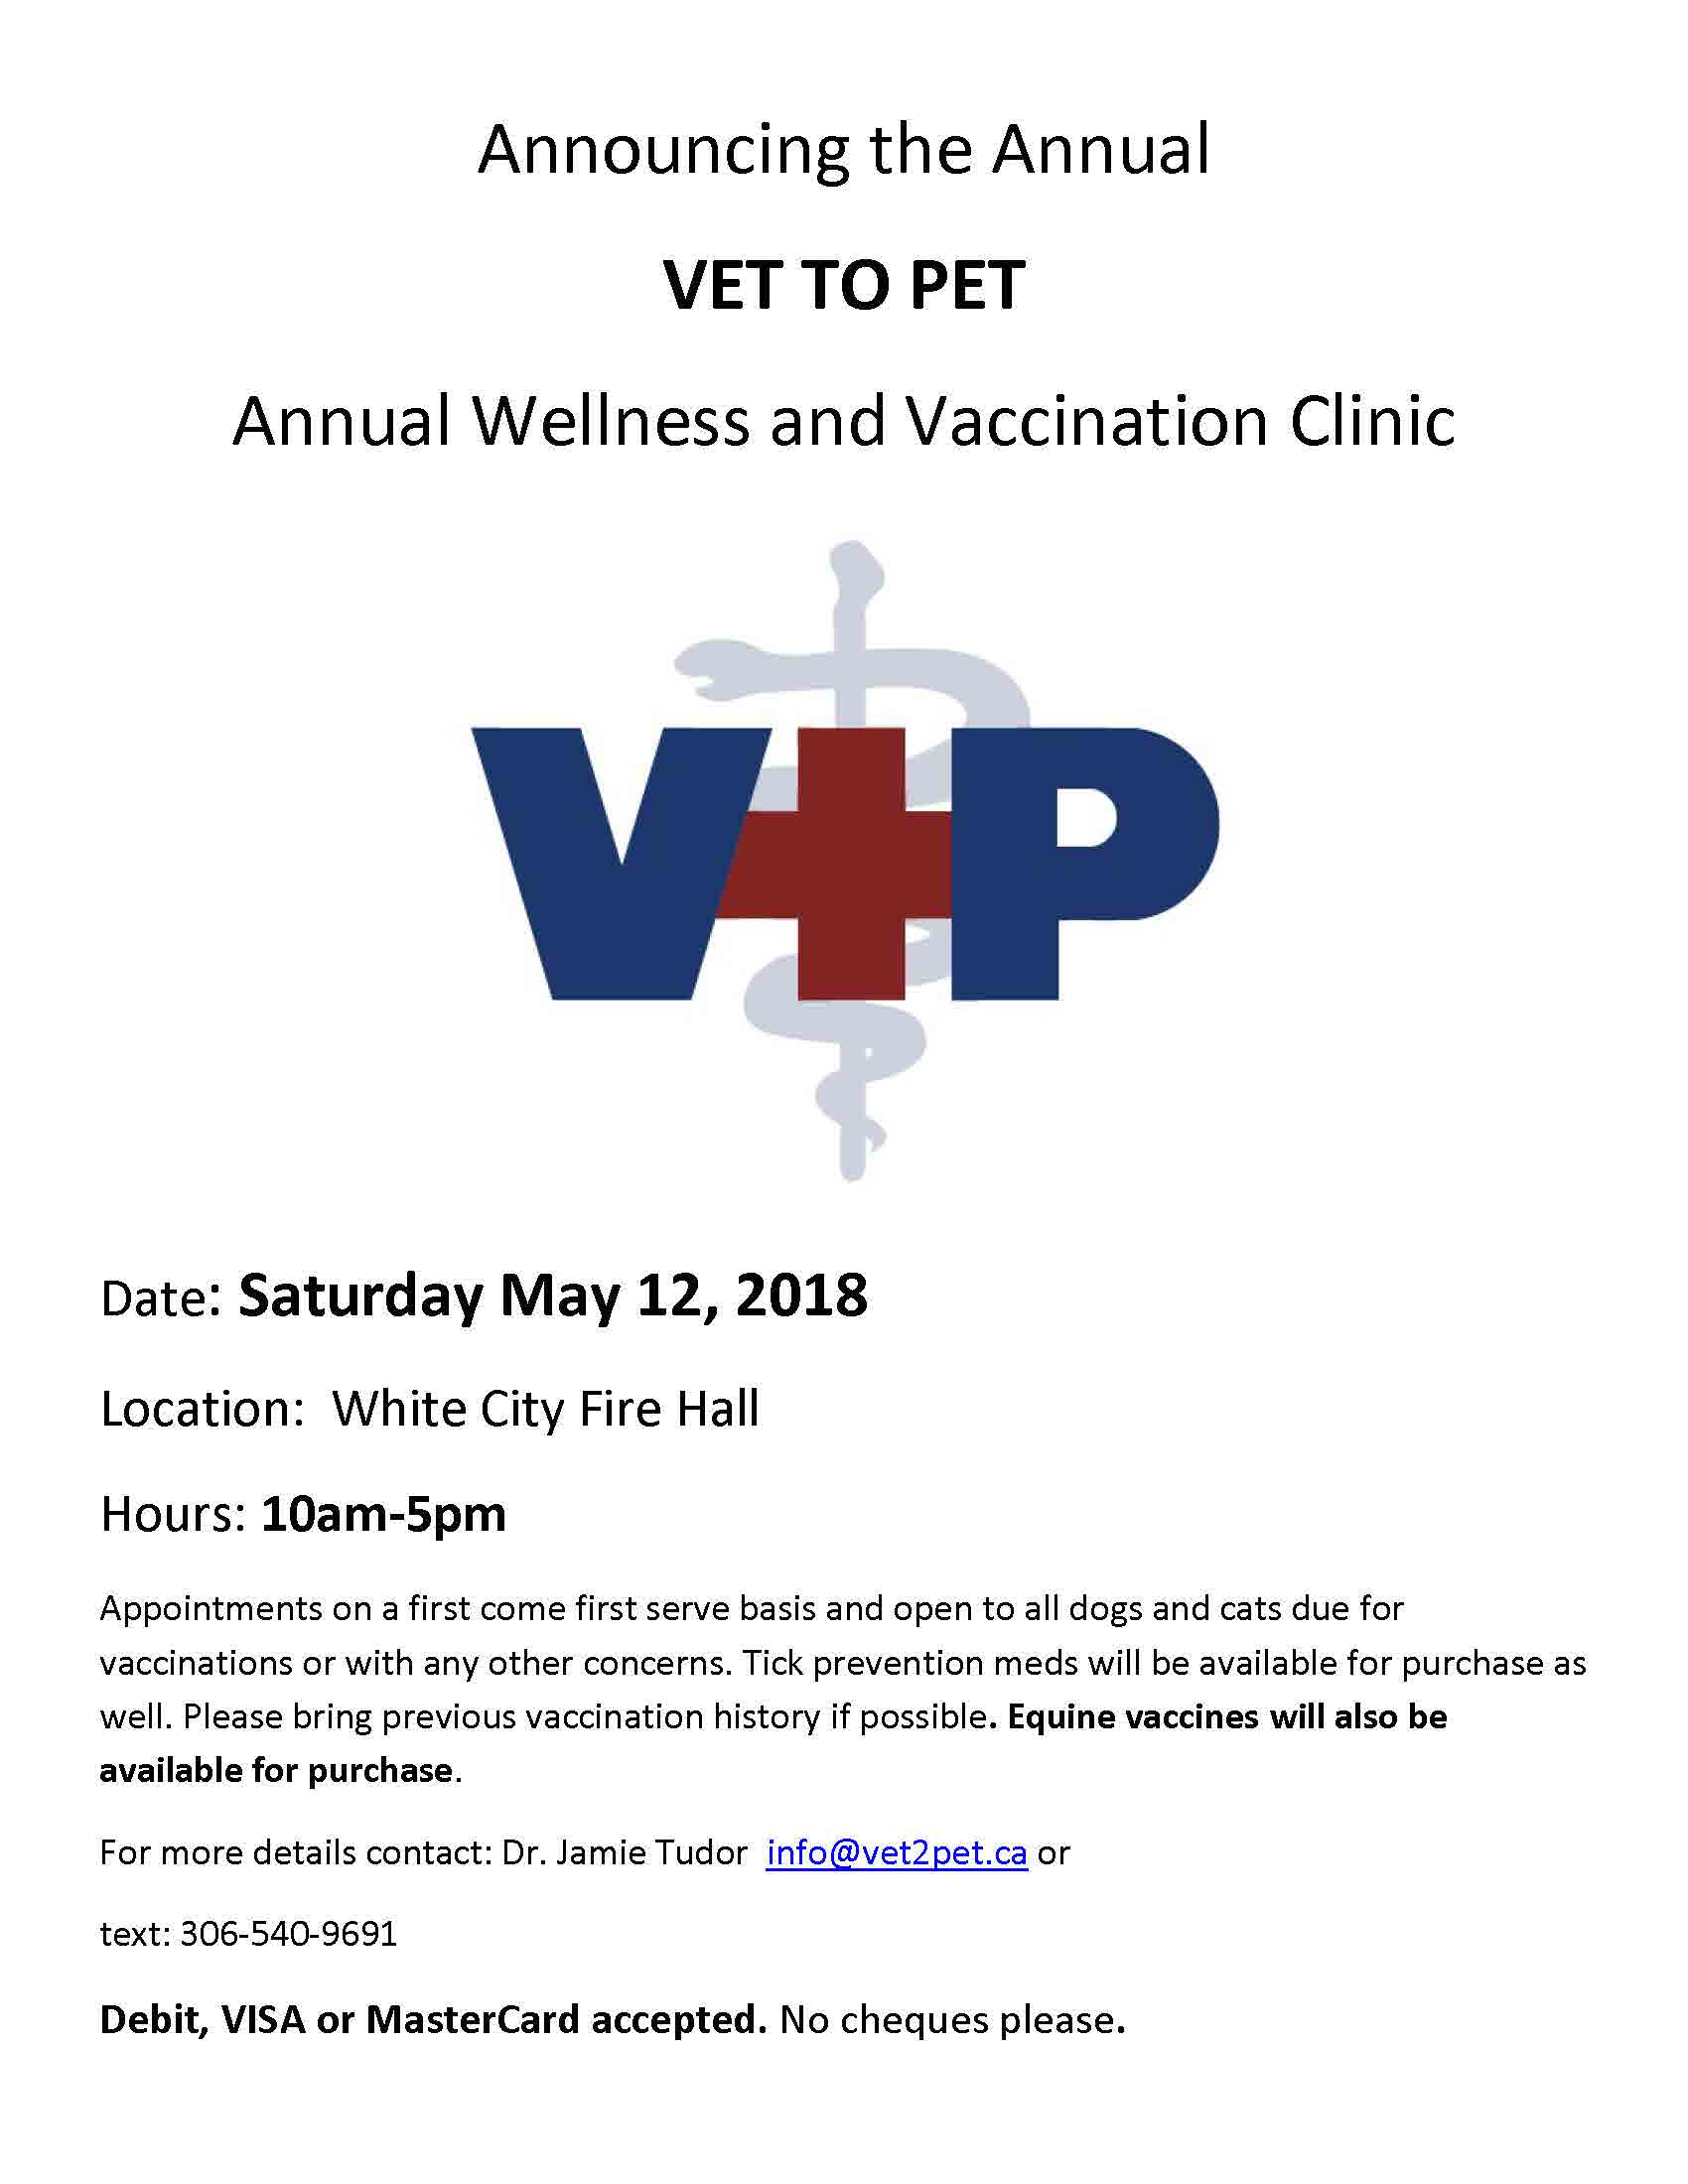 Vet to Pet Annual Wellness and Vaccination Clinic